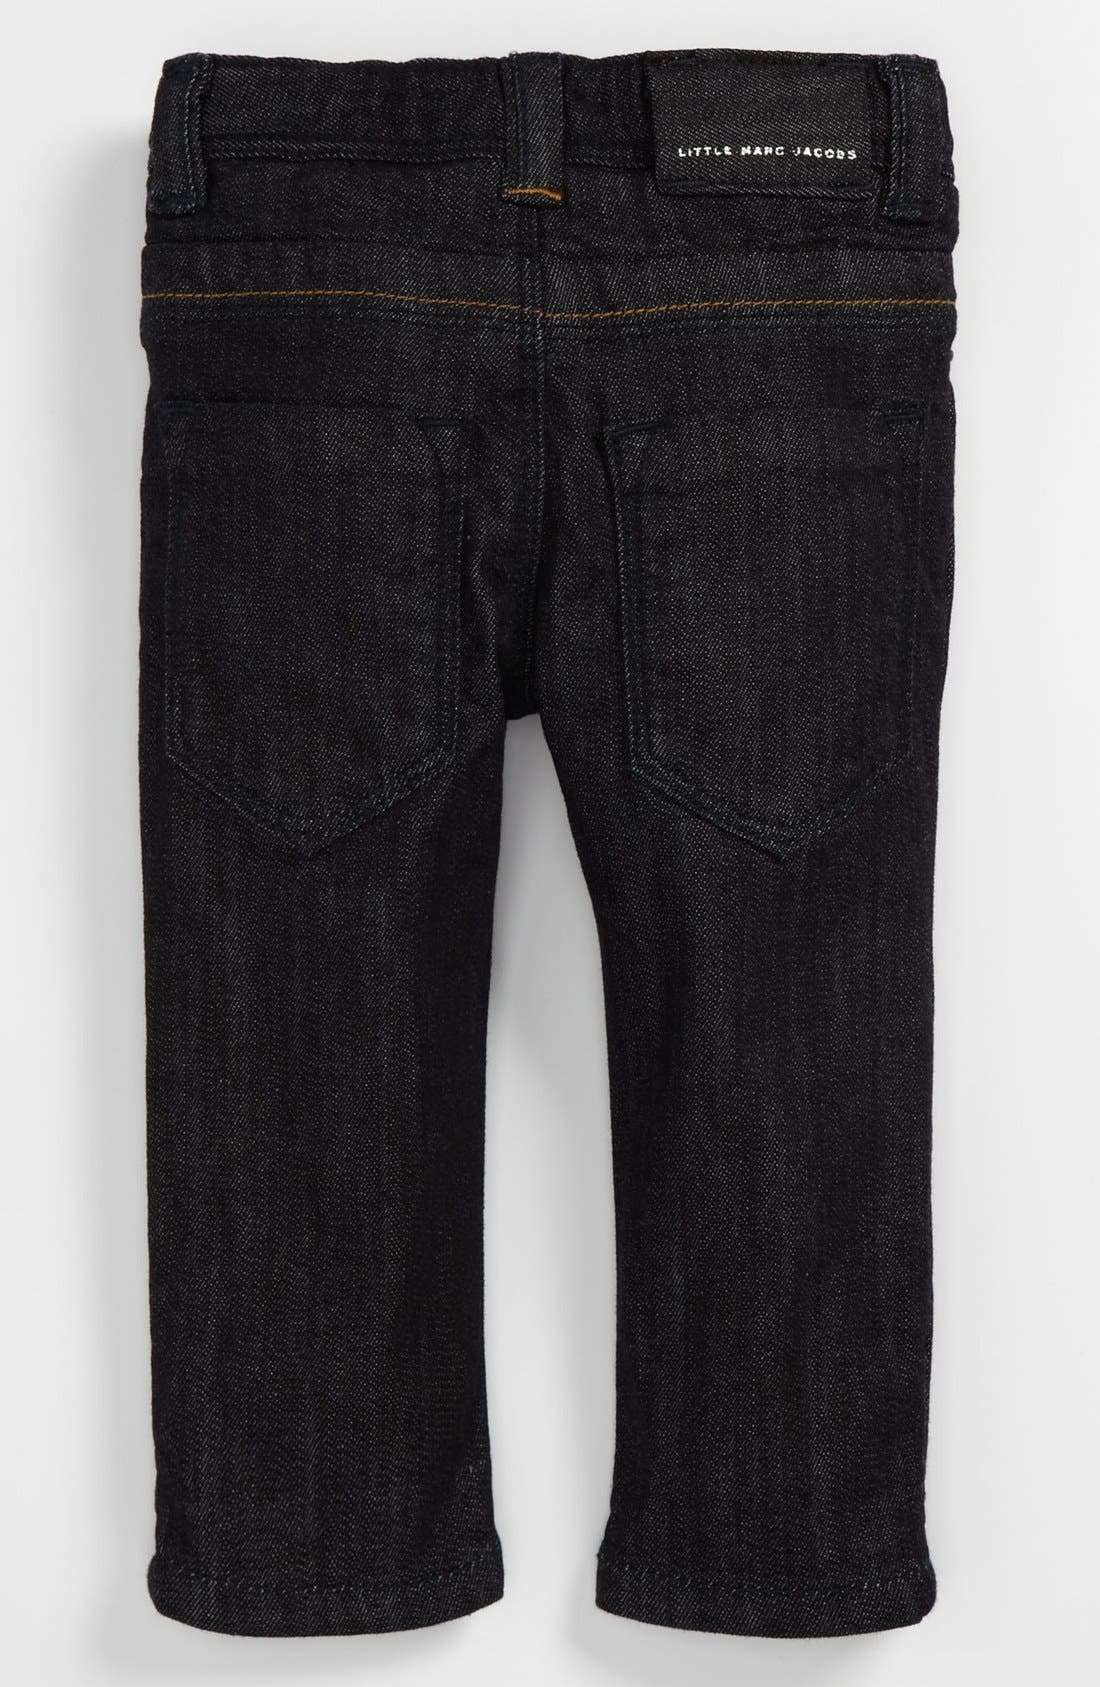 Alternate Image 1 Selected - LITTLE MARC JACOBS Slim Fit Jeans (Toddler)